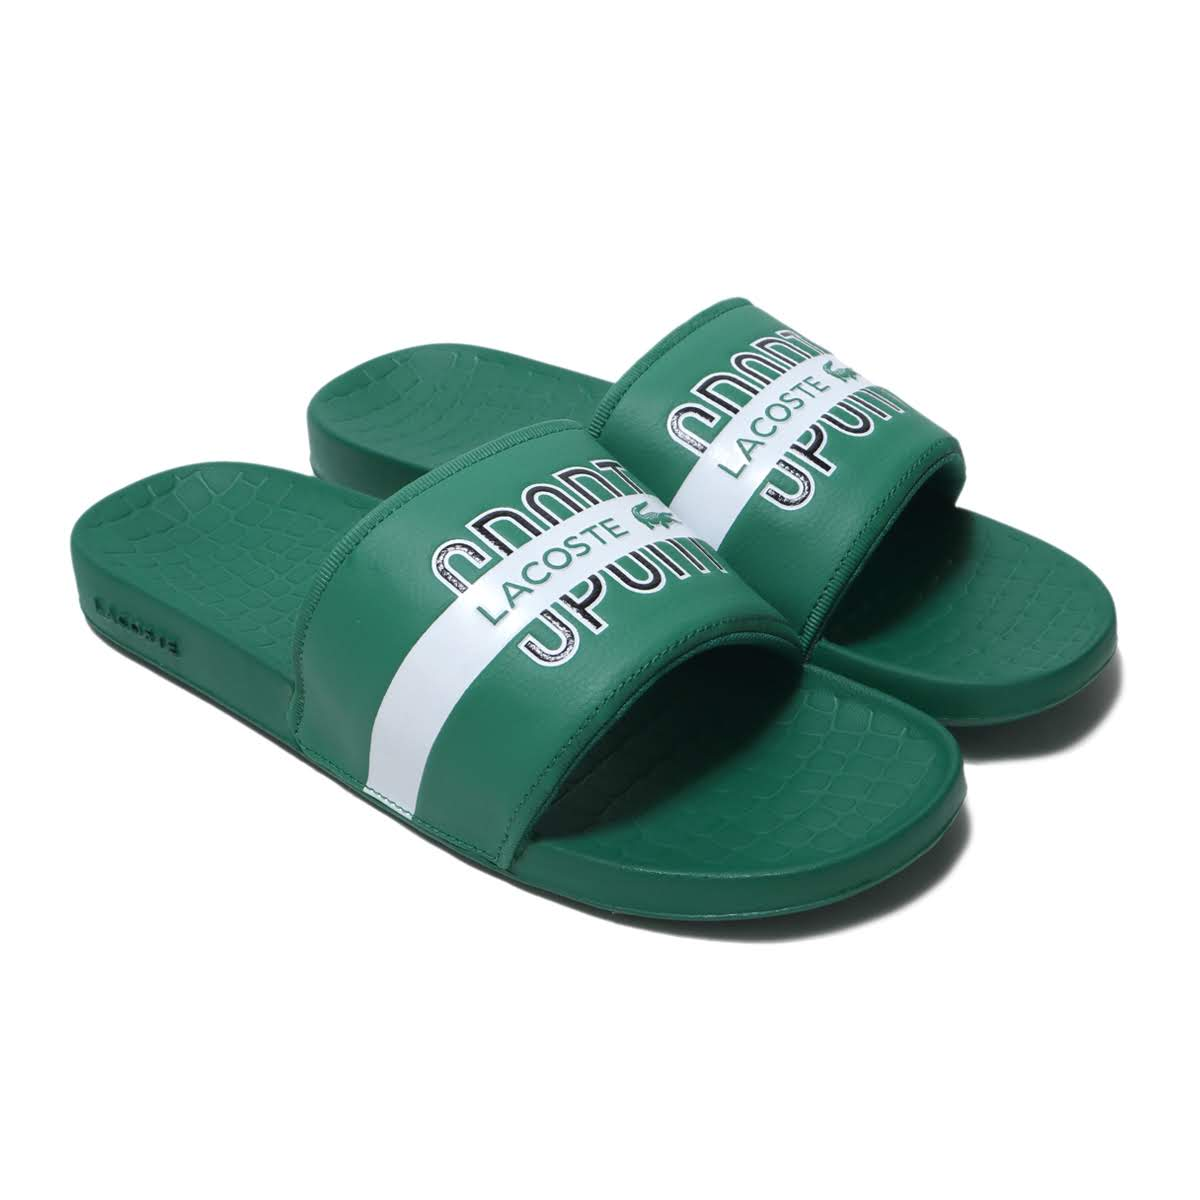 954745088875 It is the sandal which グラッフィック which is the sports inspire using the Lacoste  font of the archive image shines in in a three-dimensional foot bed